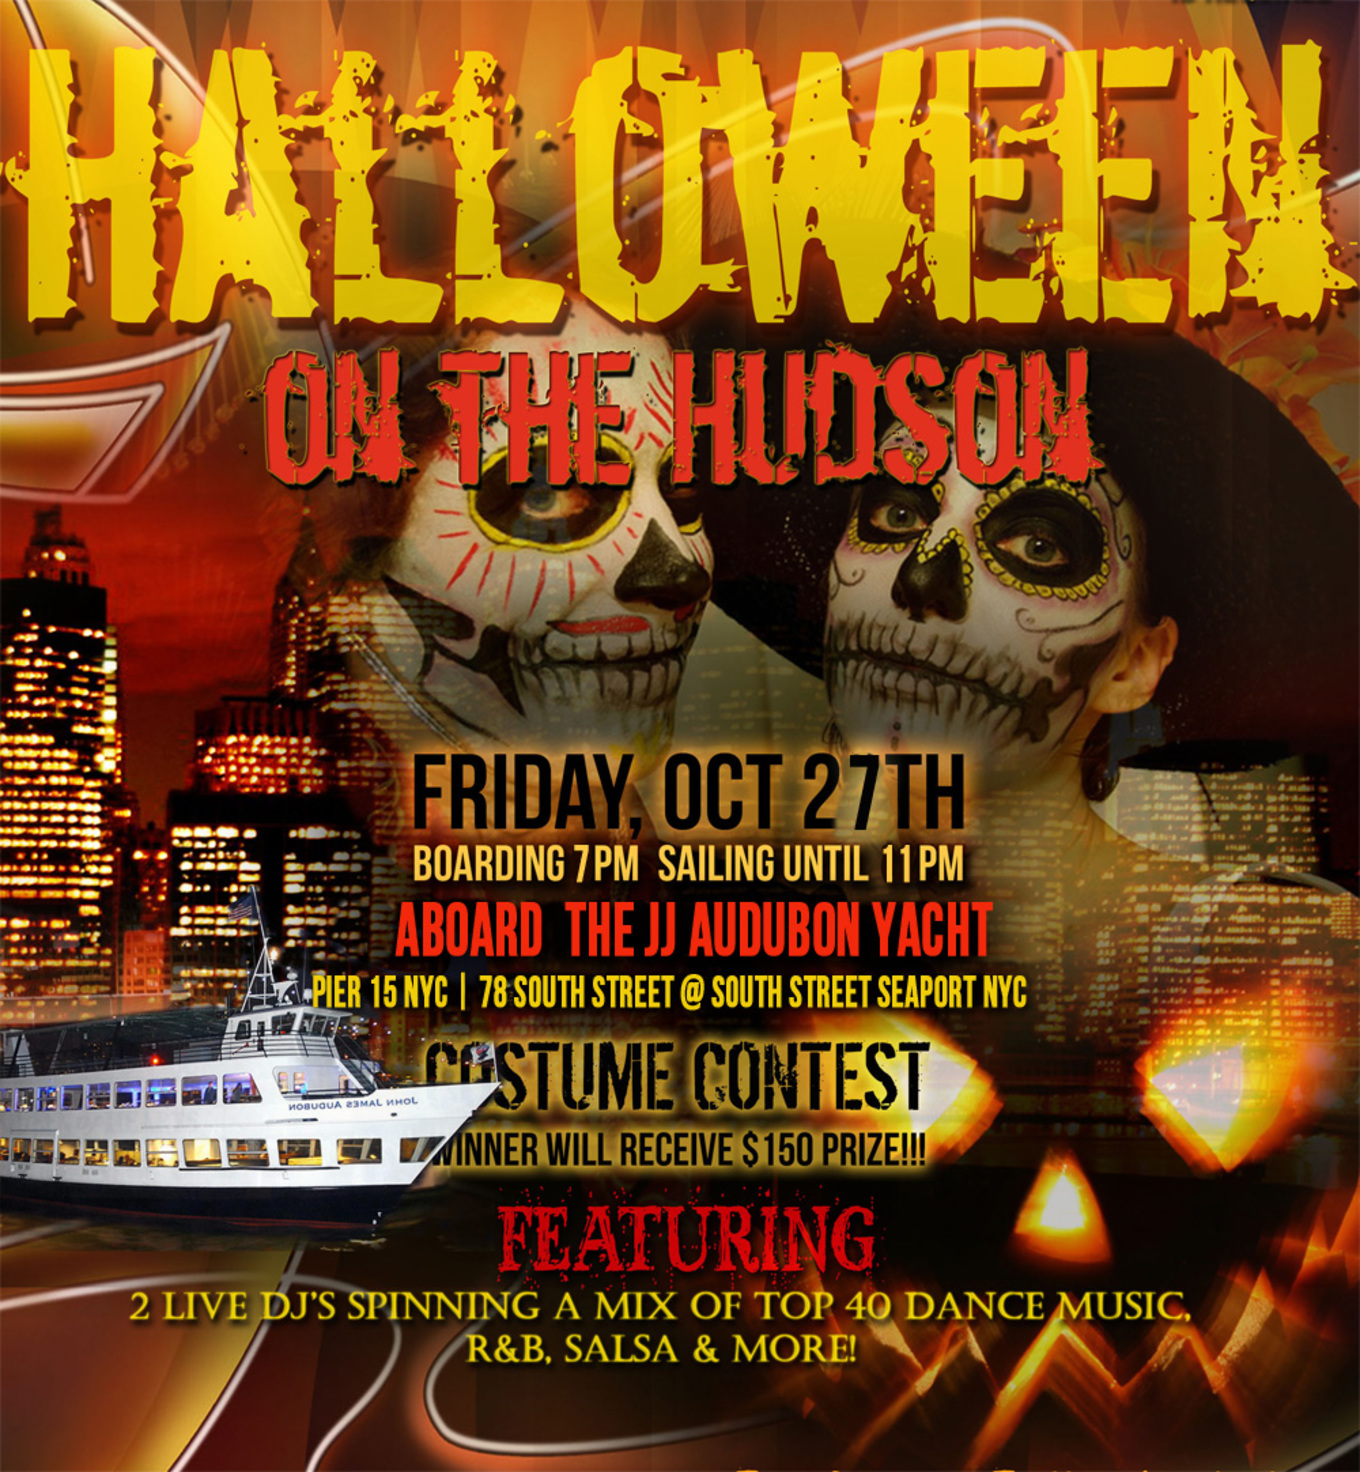 Halloween Boat Cruise | Halloween On The Hudson Dance Cruise Nyc Boat Party South Street